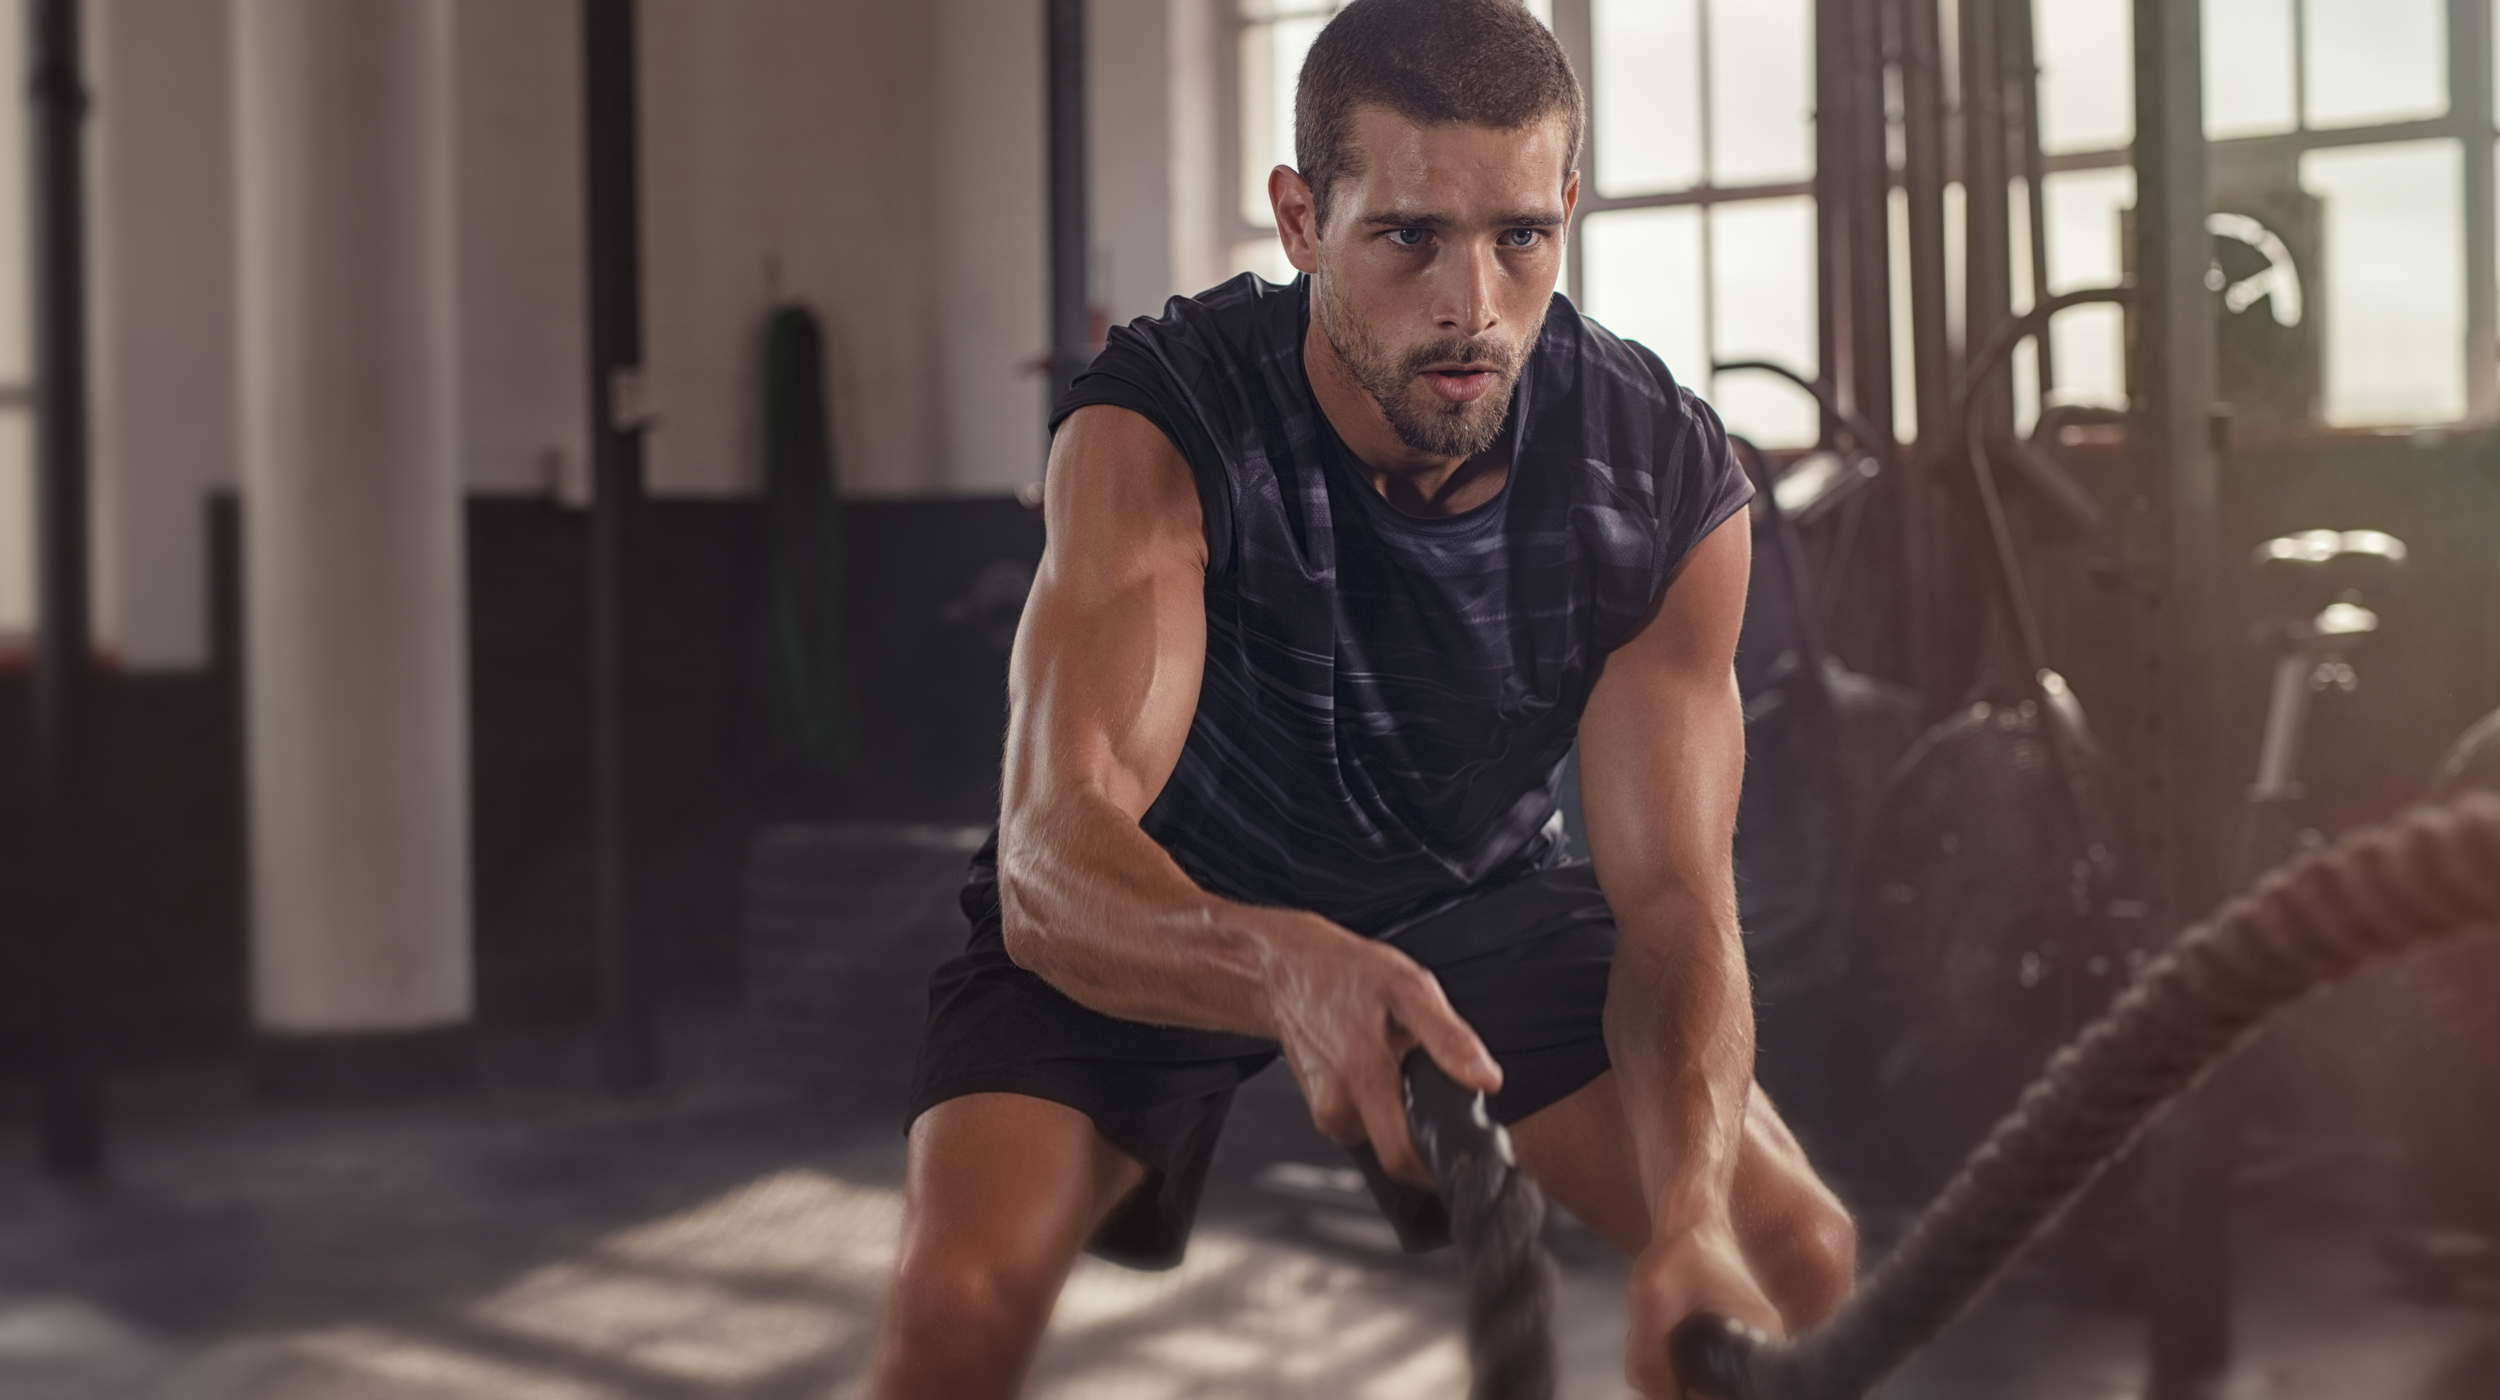 5 HUGE Mistakes Skinny Guys Make with Workouts